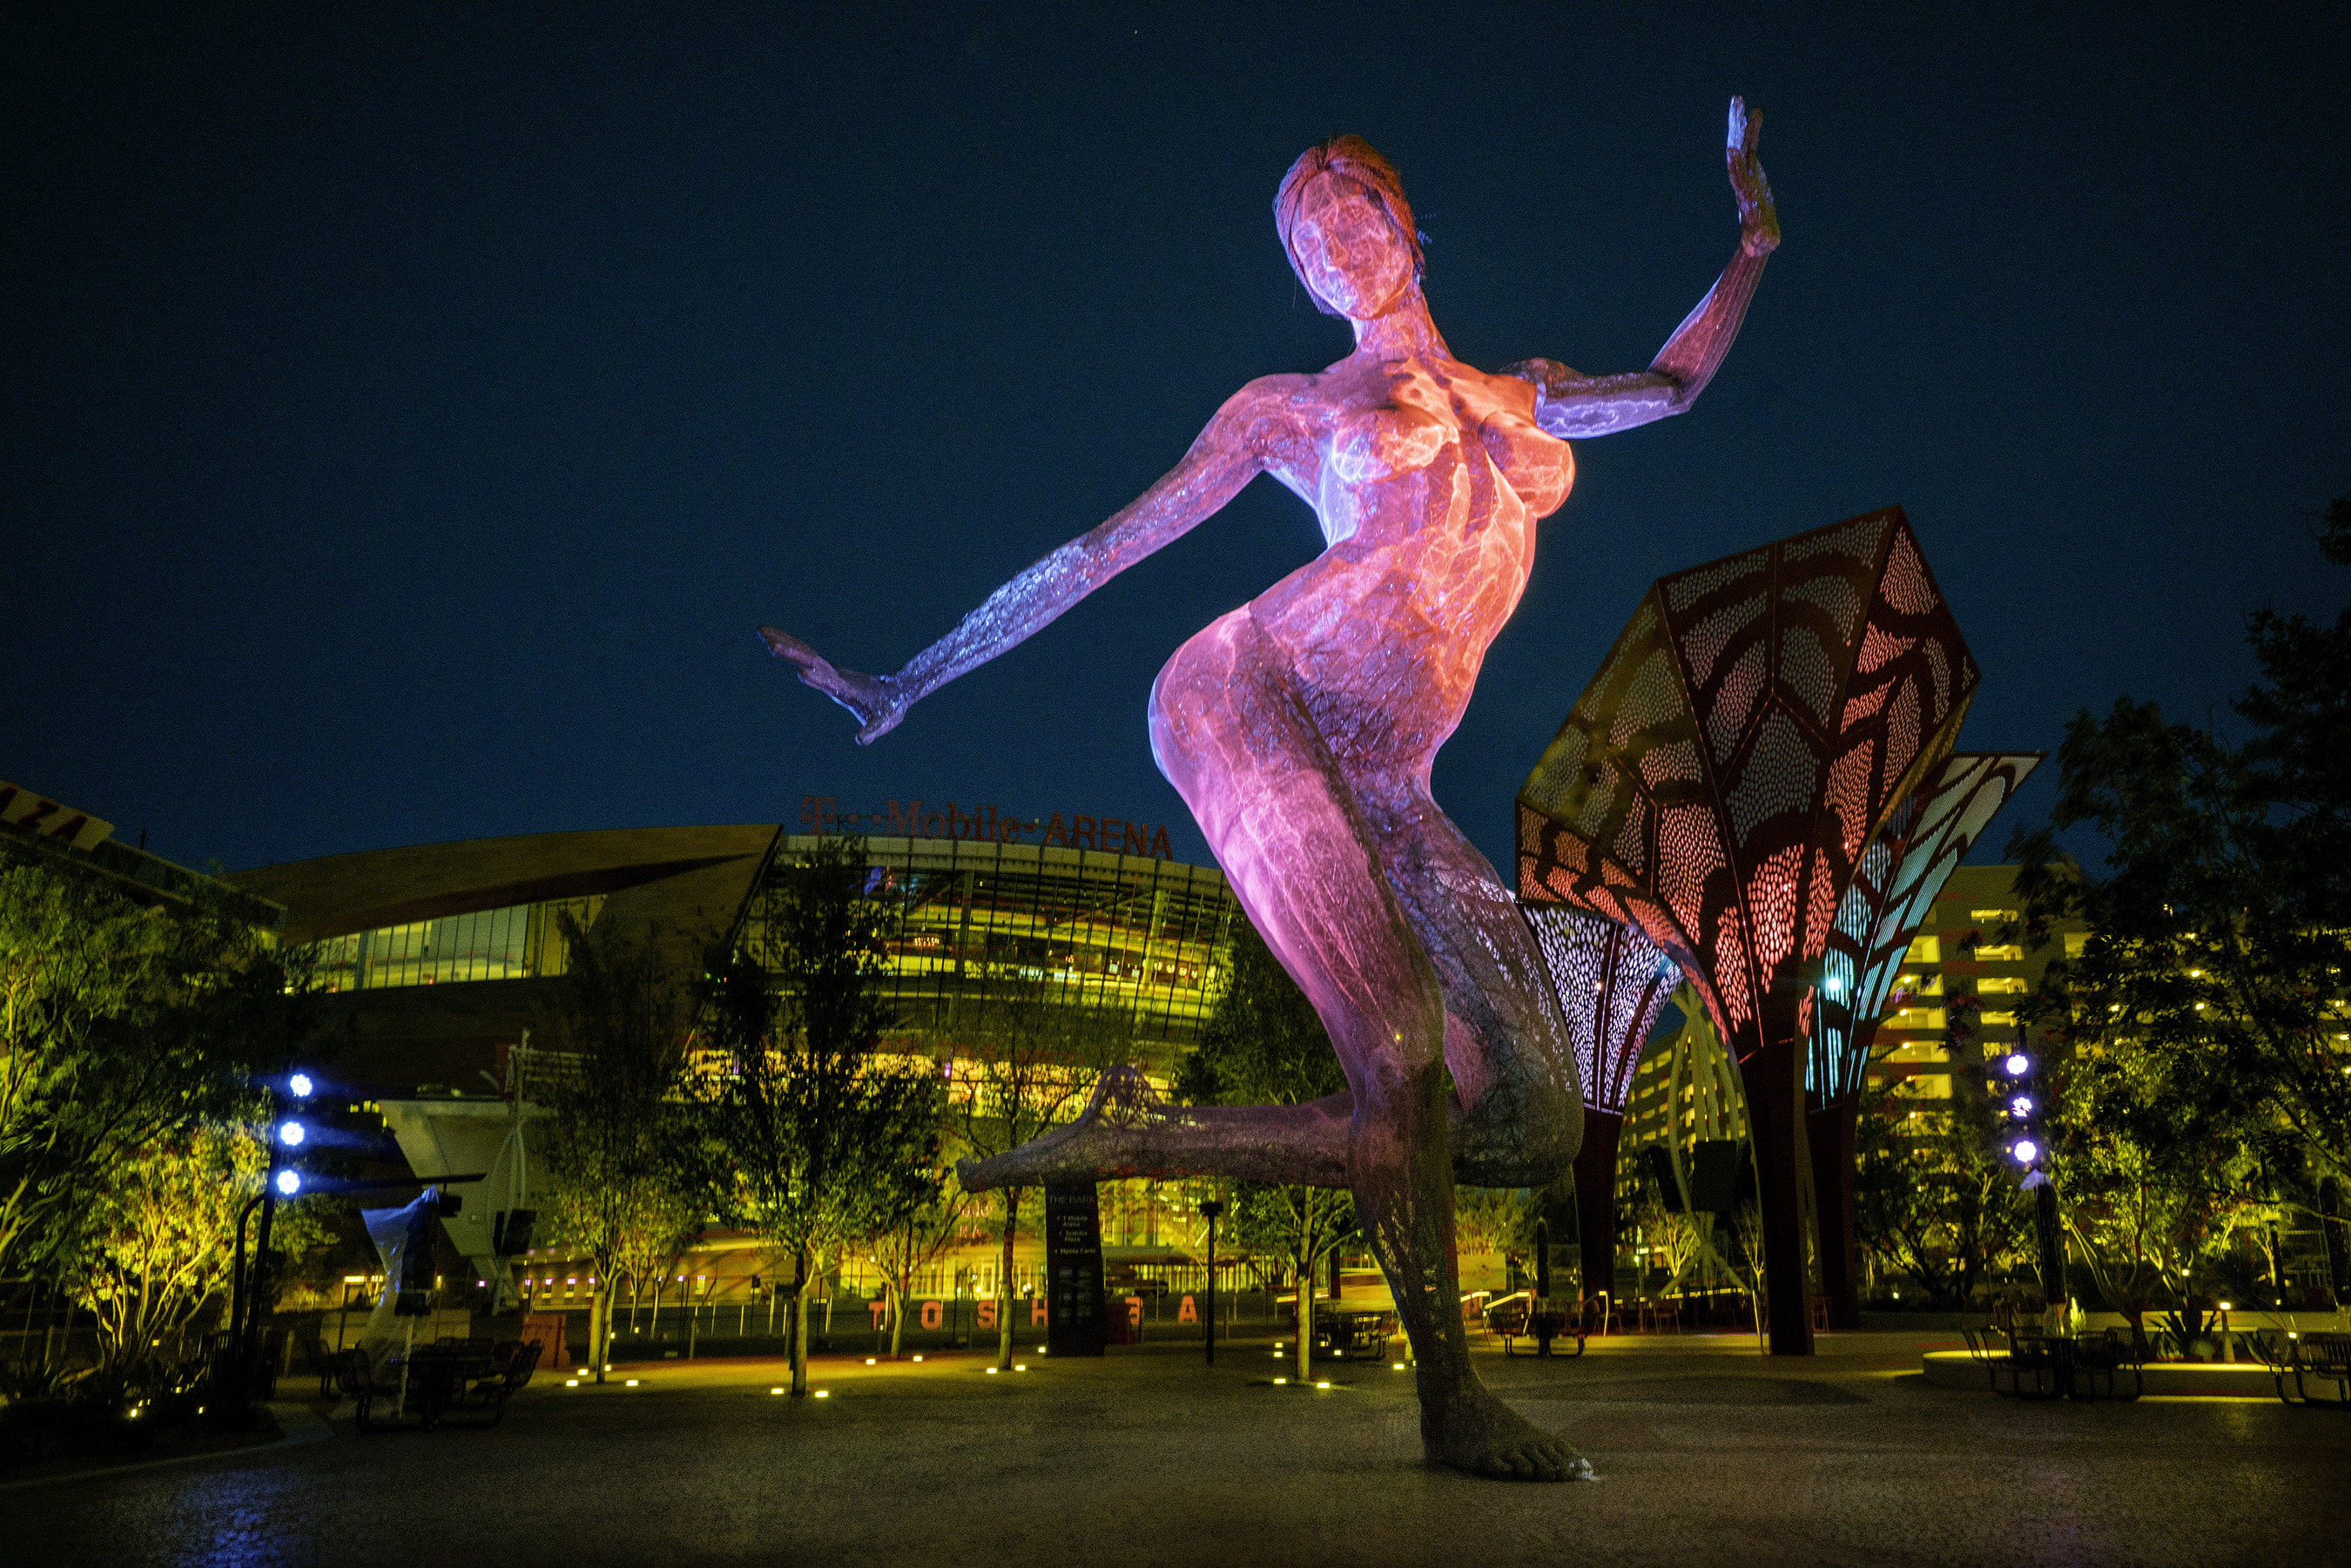 Bliss Dance, Marco Cochrane's 40-foot-tall sculpture of a dancing woman, carries a message of female empowerment & strength. She debuted at Burning Man & now has a permanent home in the Nevada desert.